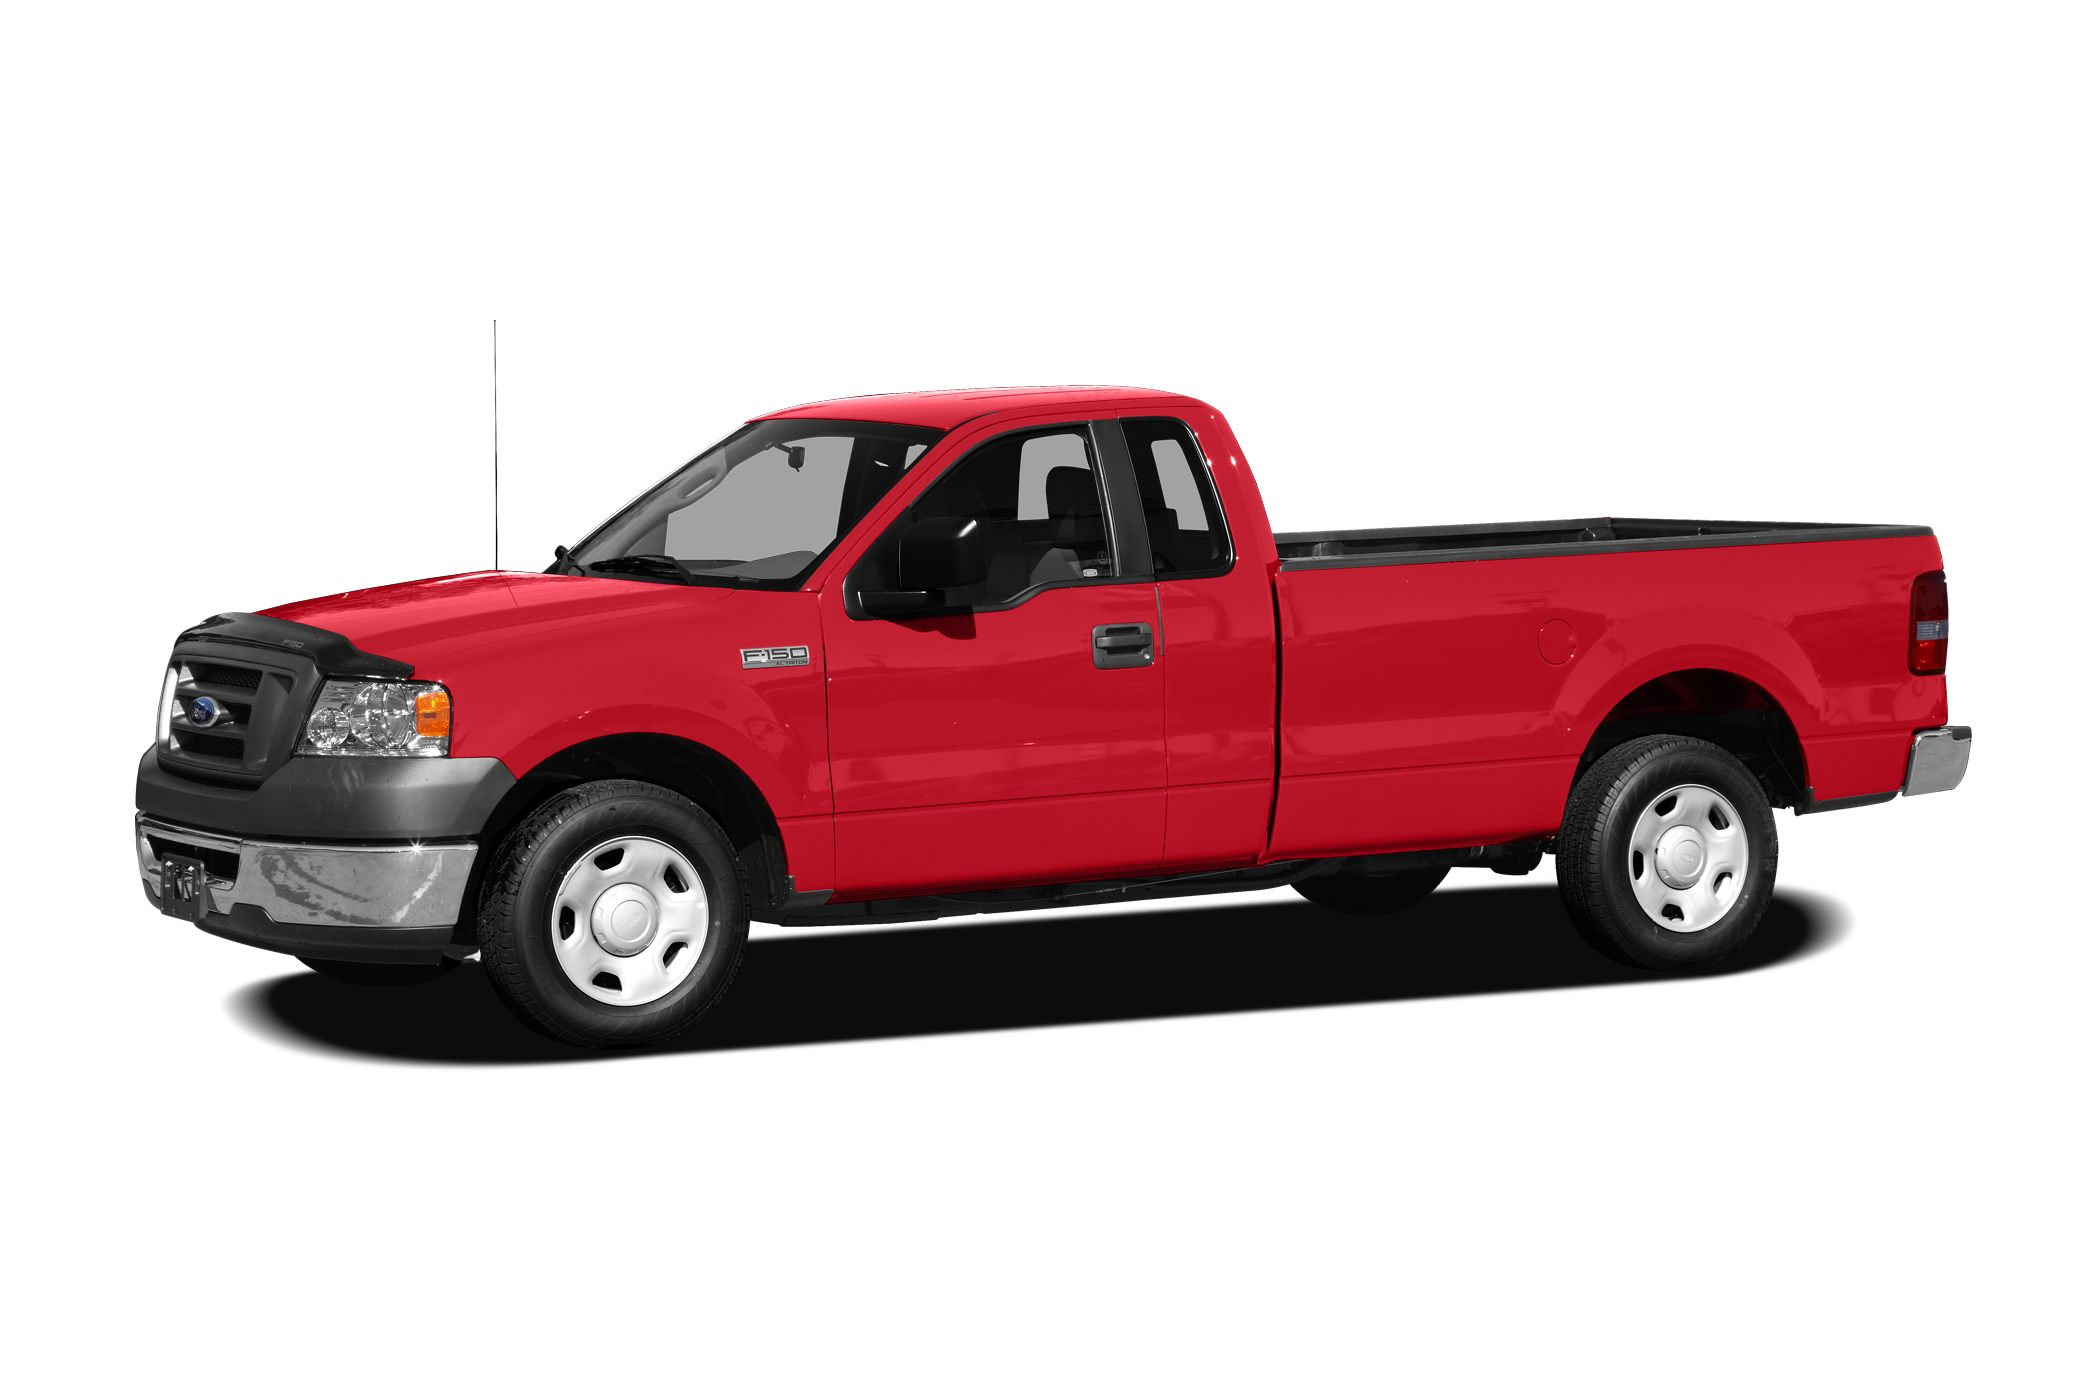 2008 Ford F-150  Low Miles This 2008 Ford F-150 will sell fast Please let us help you with Findin